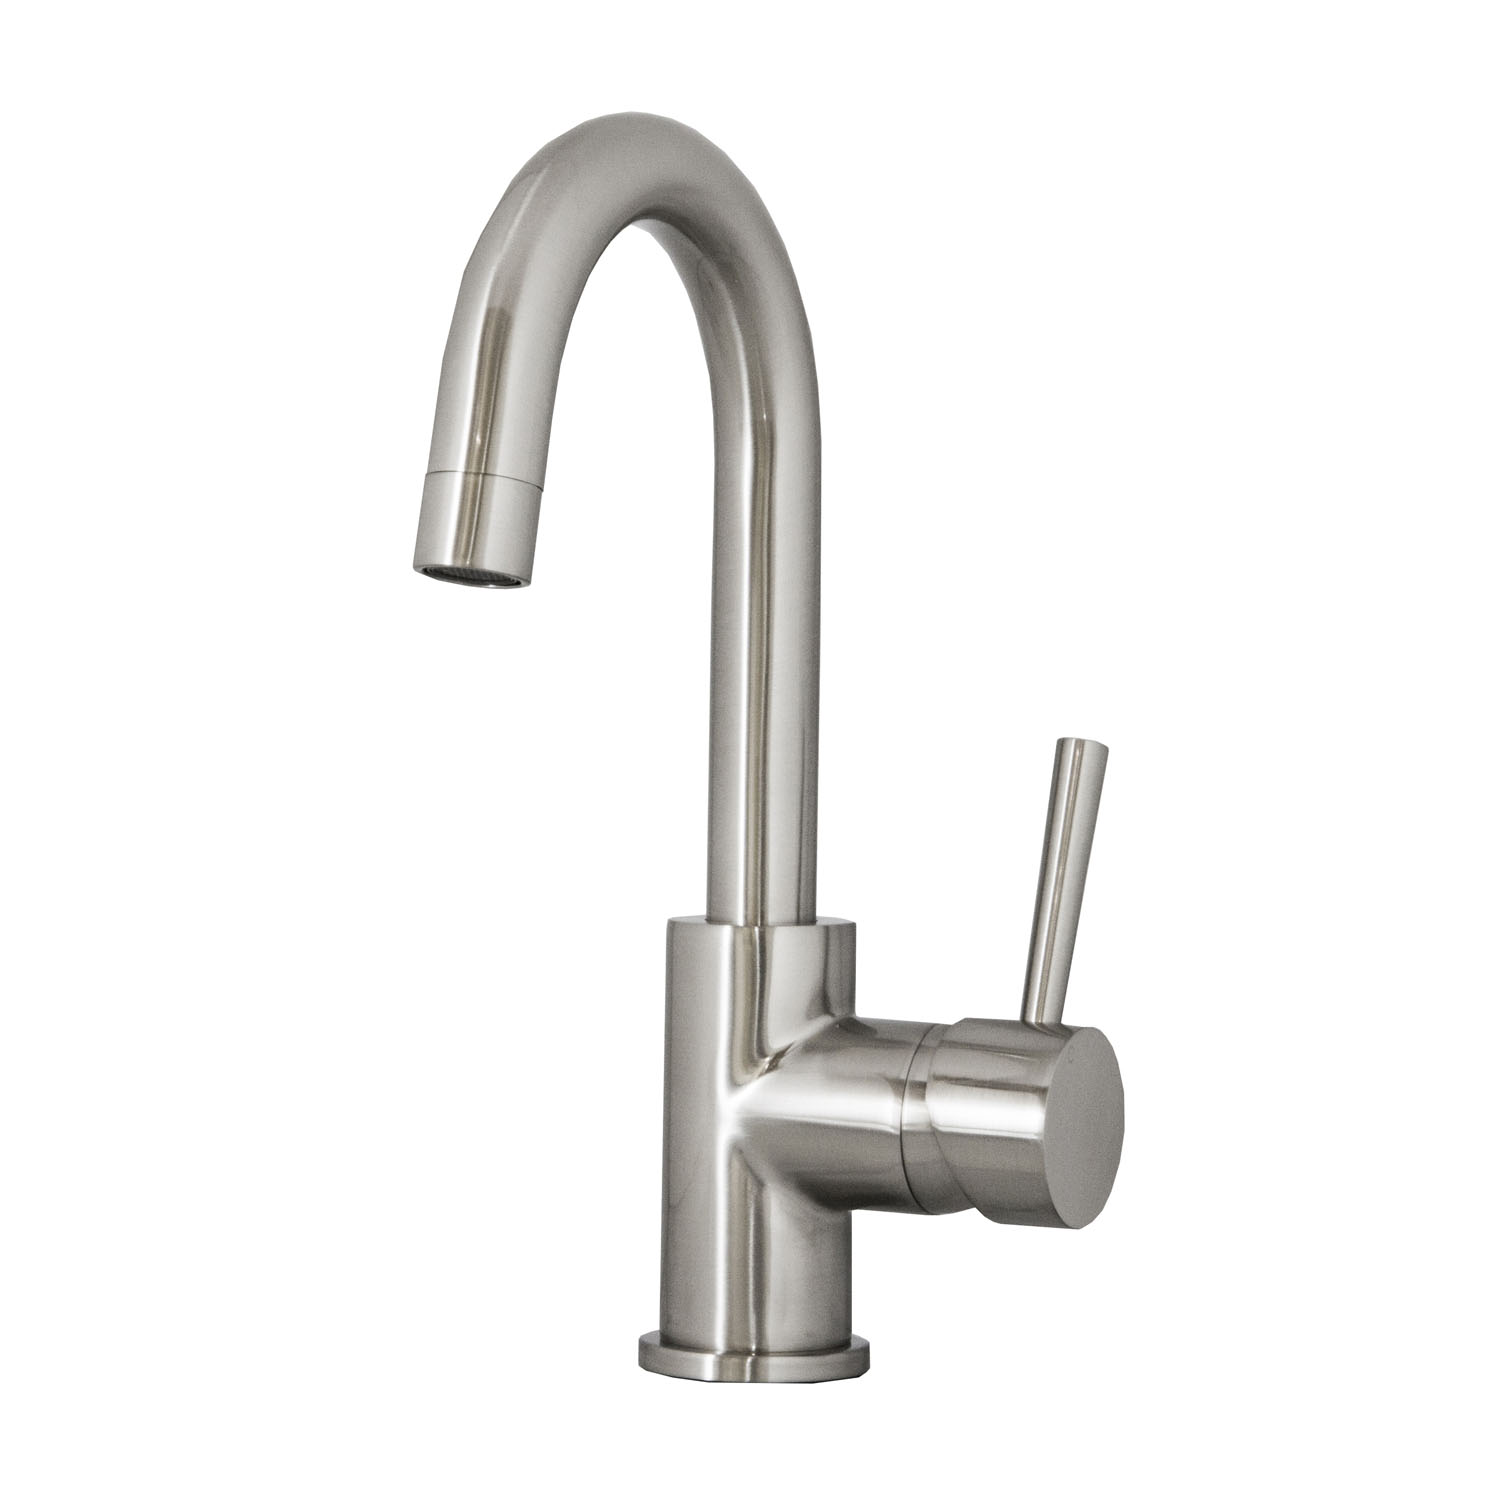 Lithios 501 single hole kitchen faucet psk 501 kitchen faucets virtu usa